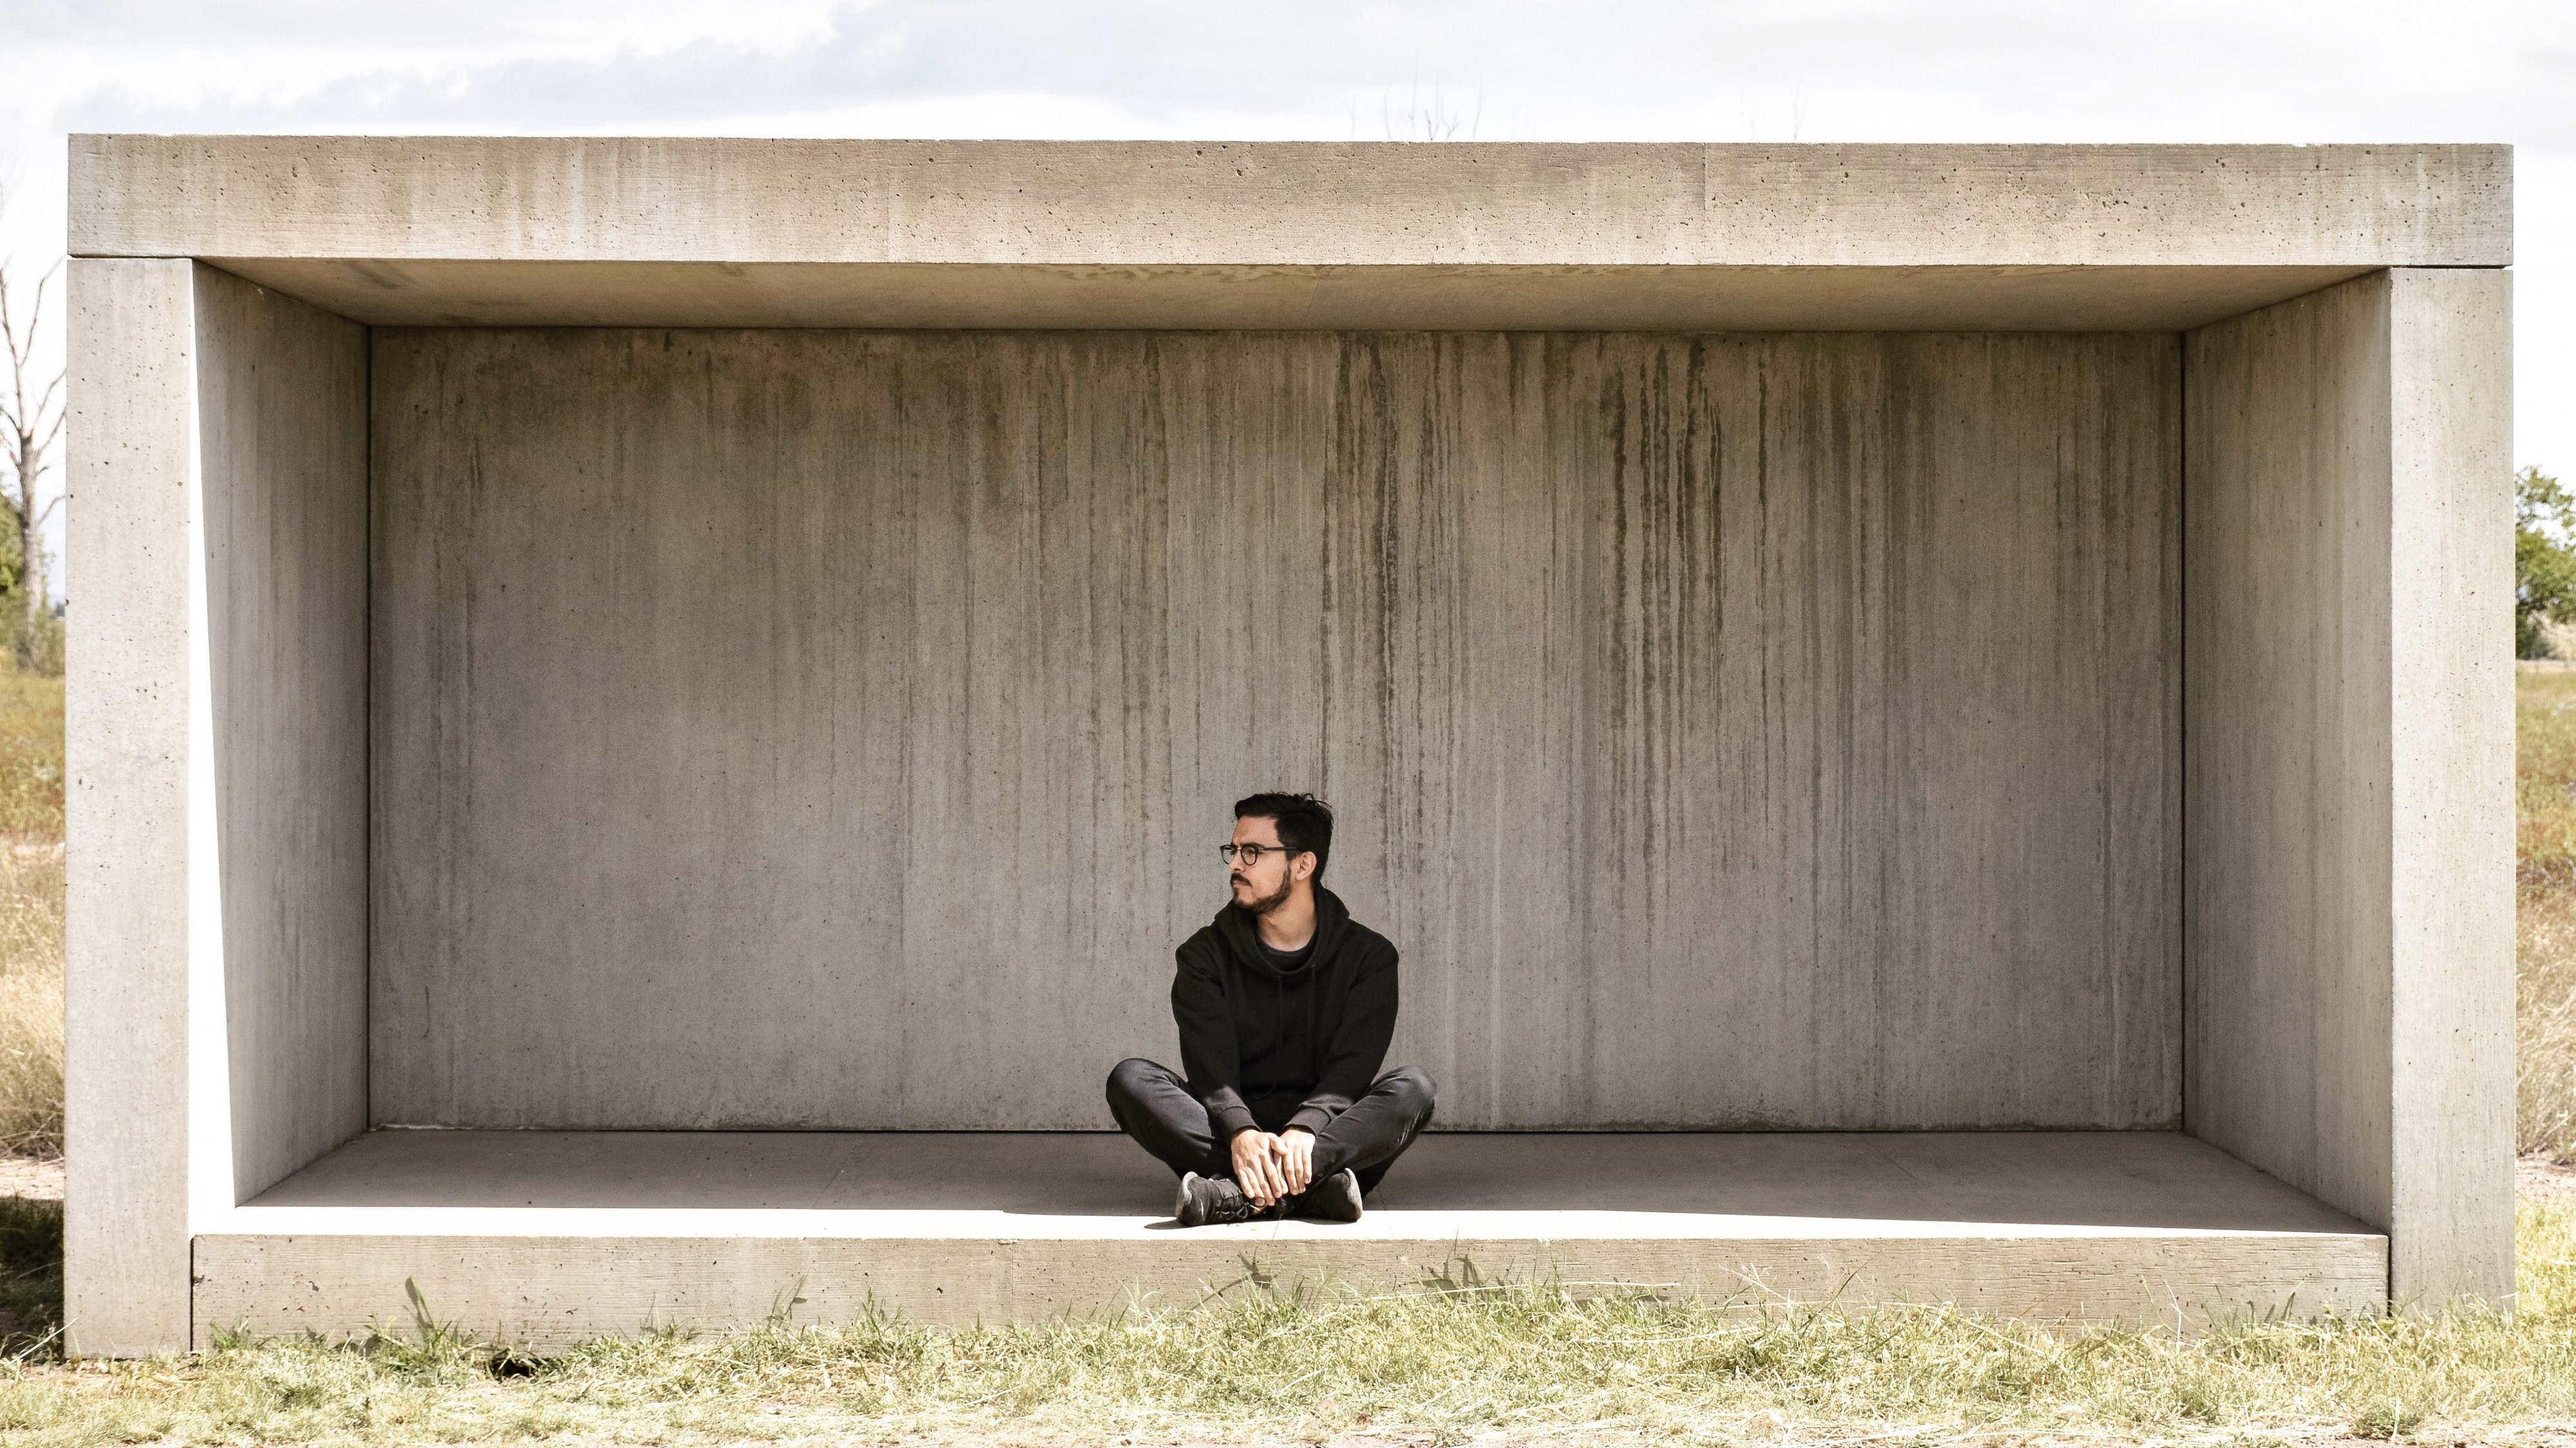 man with dark hair wearing glasses sitting cross-legged on concrete structure